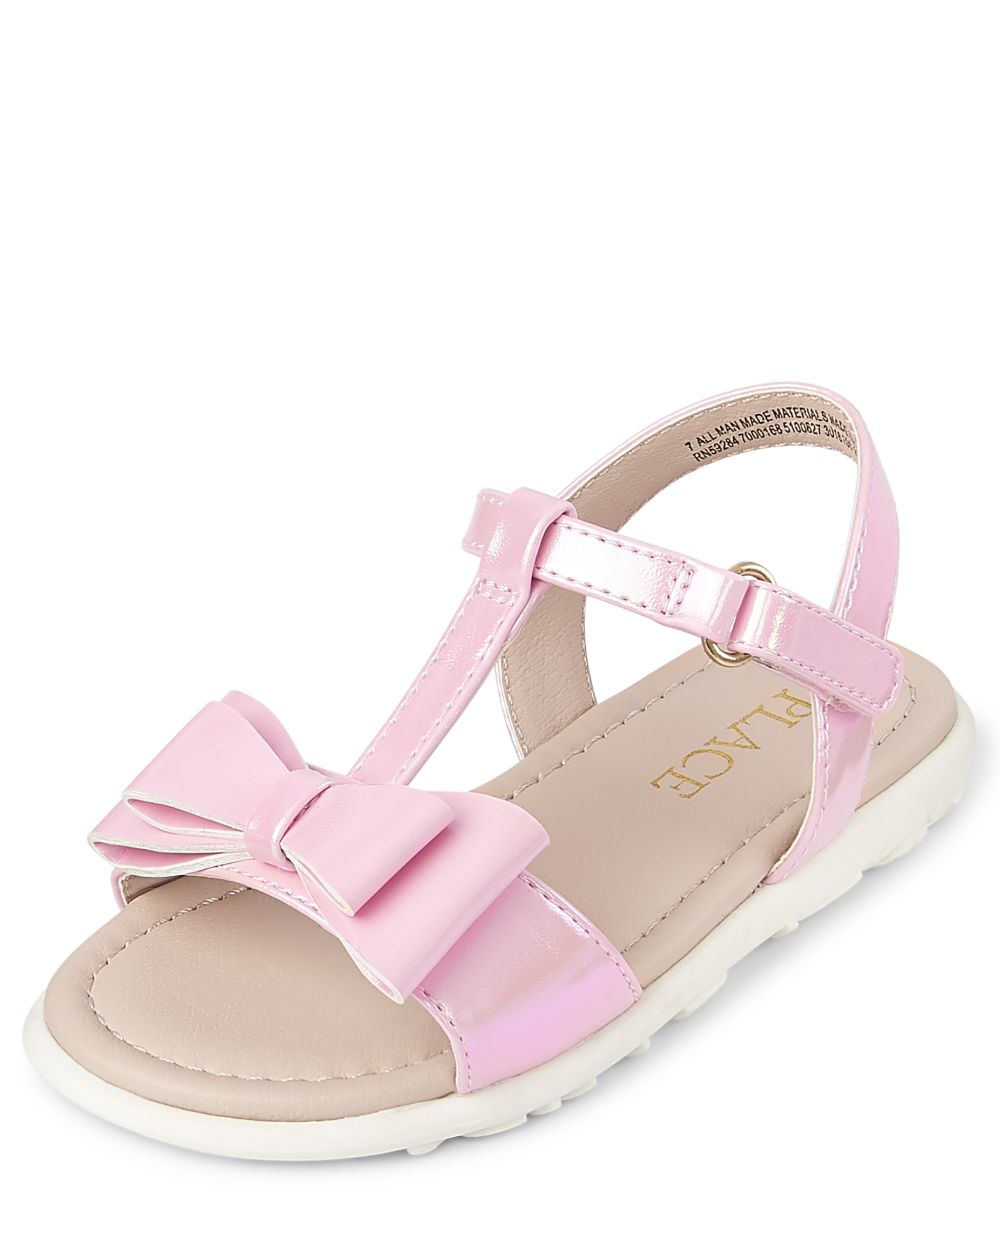 Toddler Bow Sandals - Pink